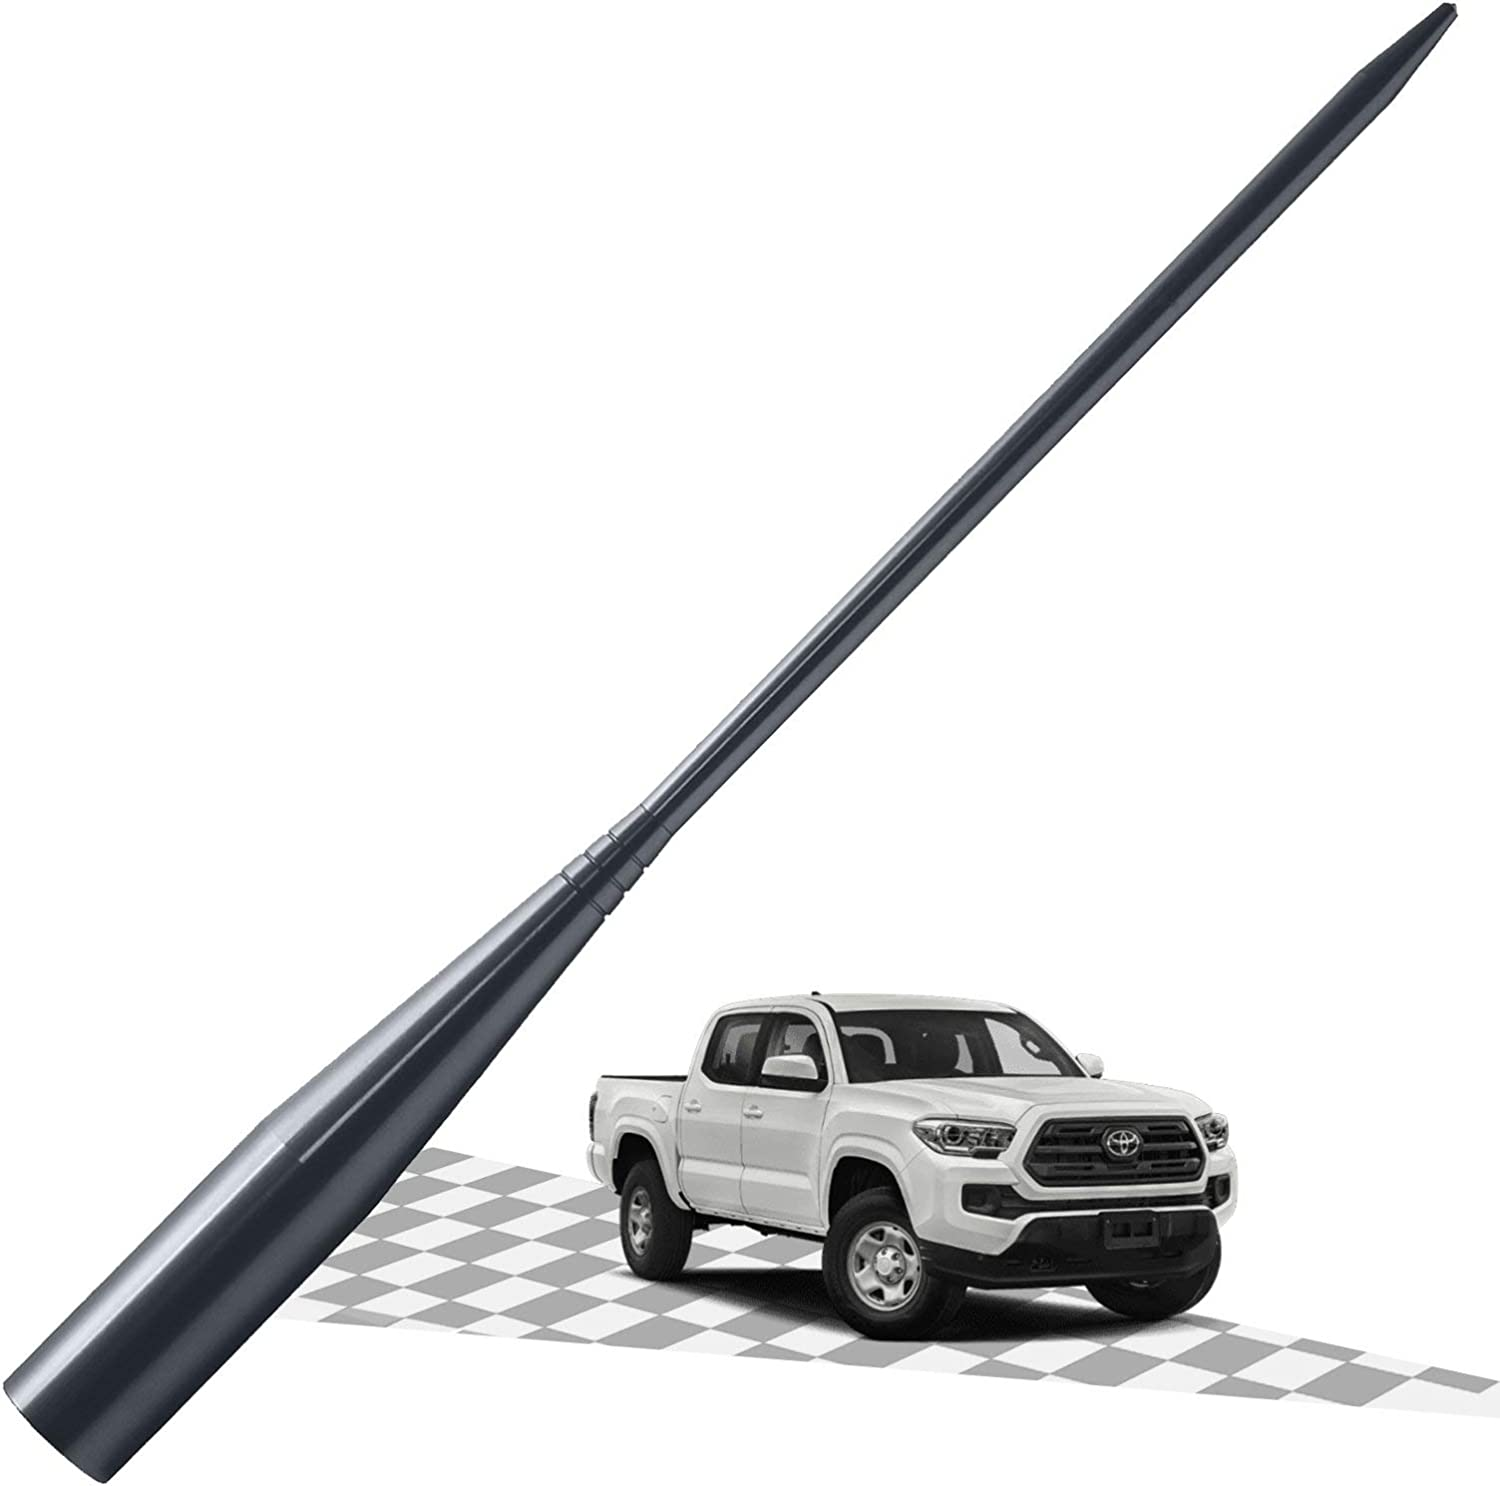 Carbon/Black 3.2 Inches Elitezip Antenna Compatible with Ford Focus 2000-2007 Optimized AM//FM Reception with Tough Material